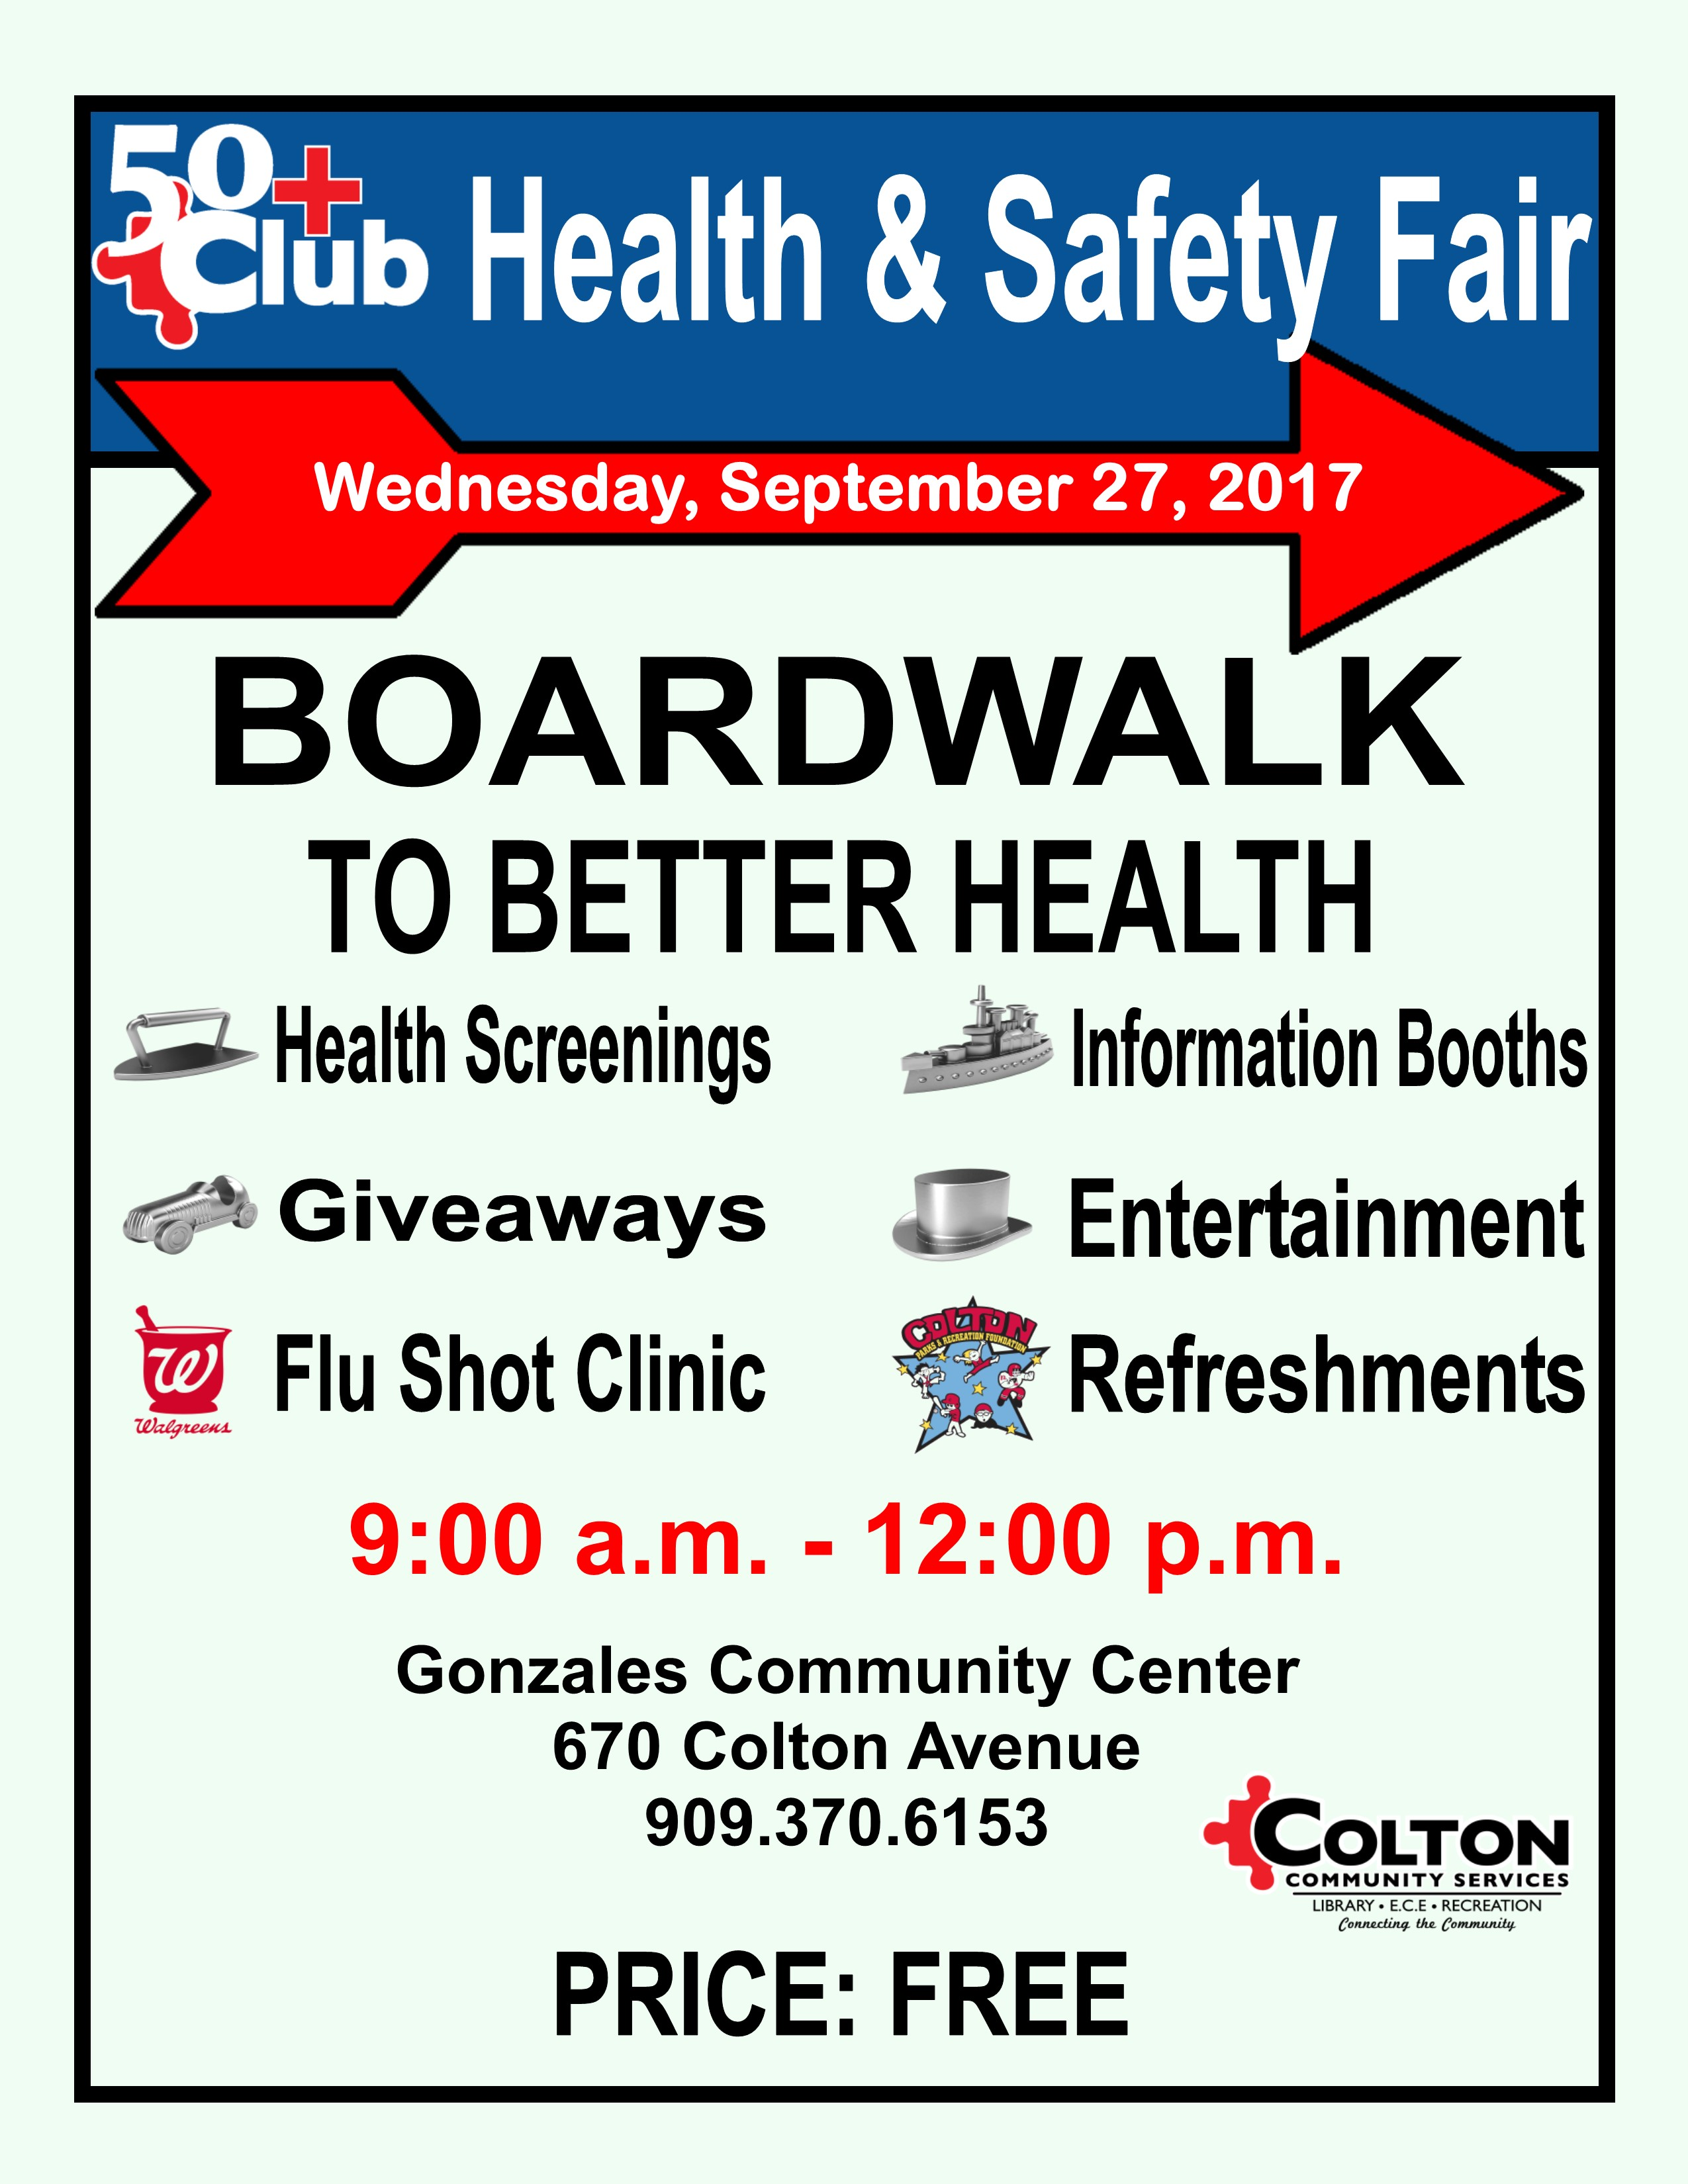 50 Plus Club Annual Health and Safety Fair Wednesday, September 27, 2017